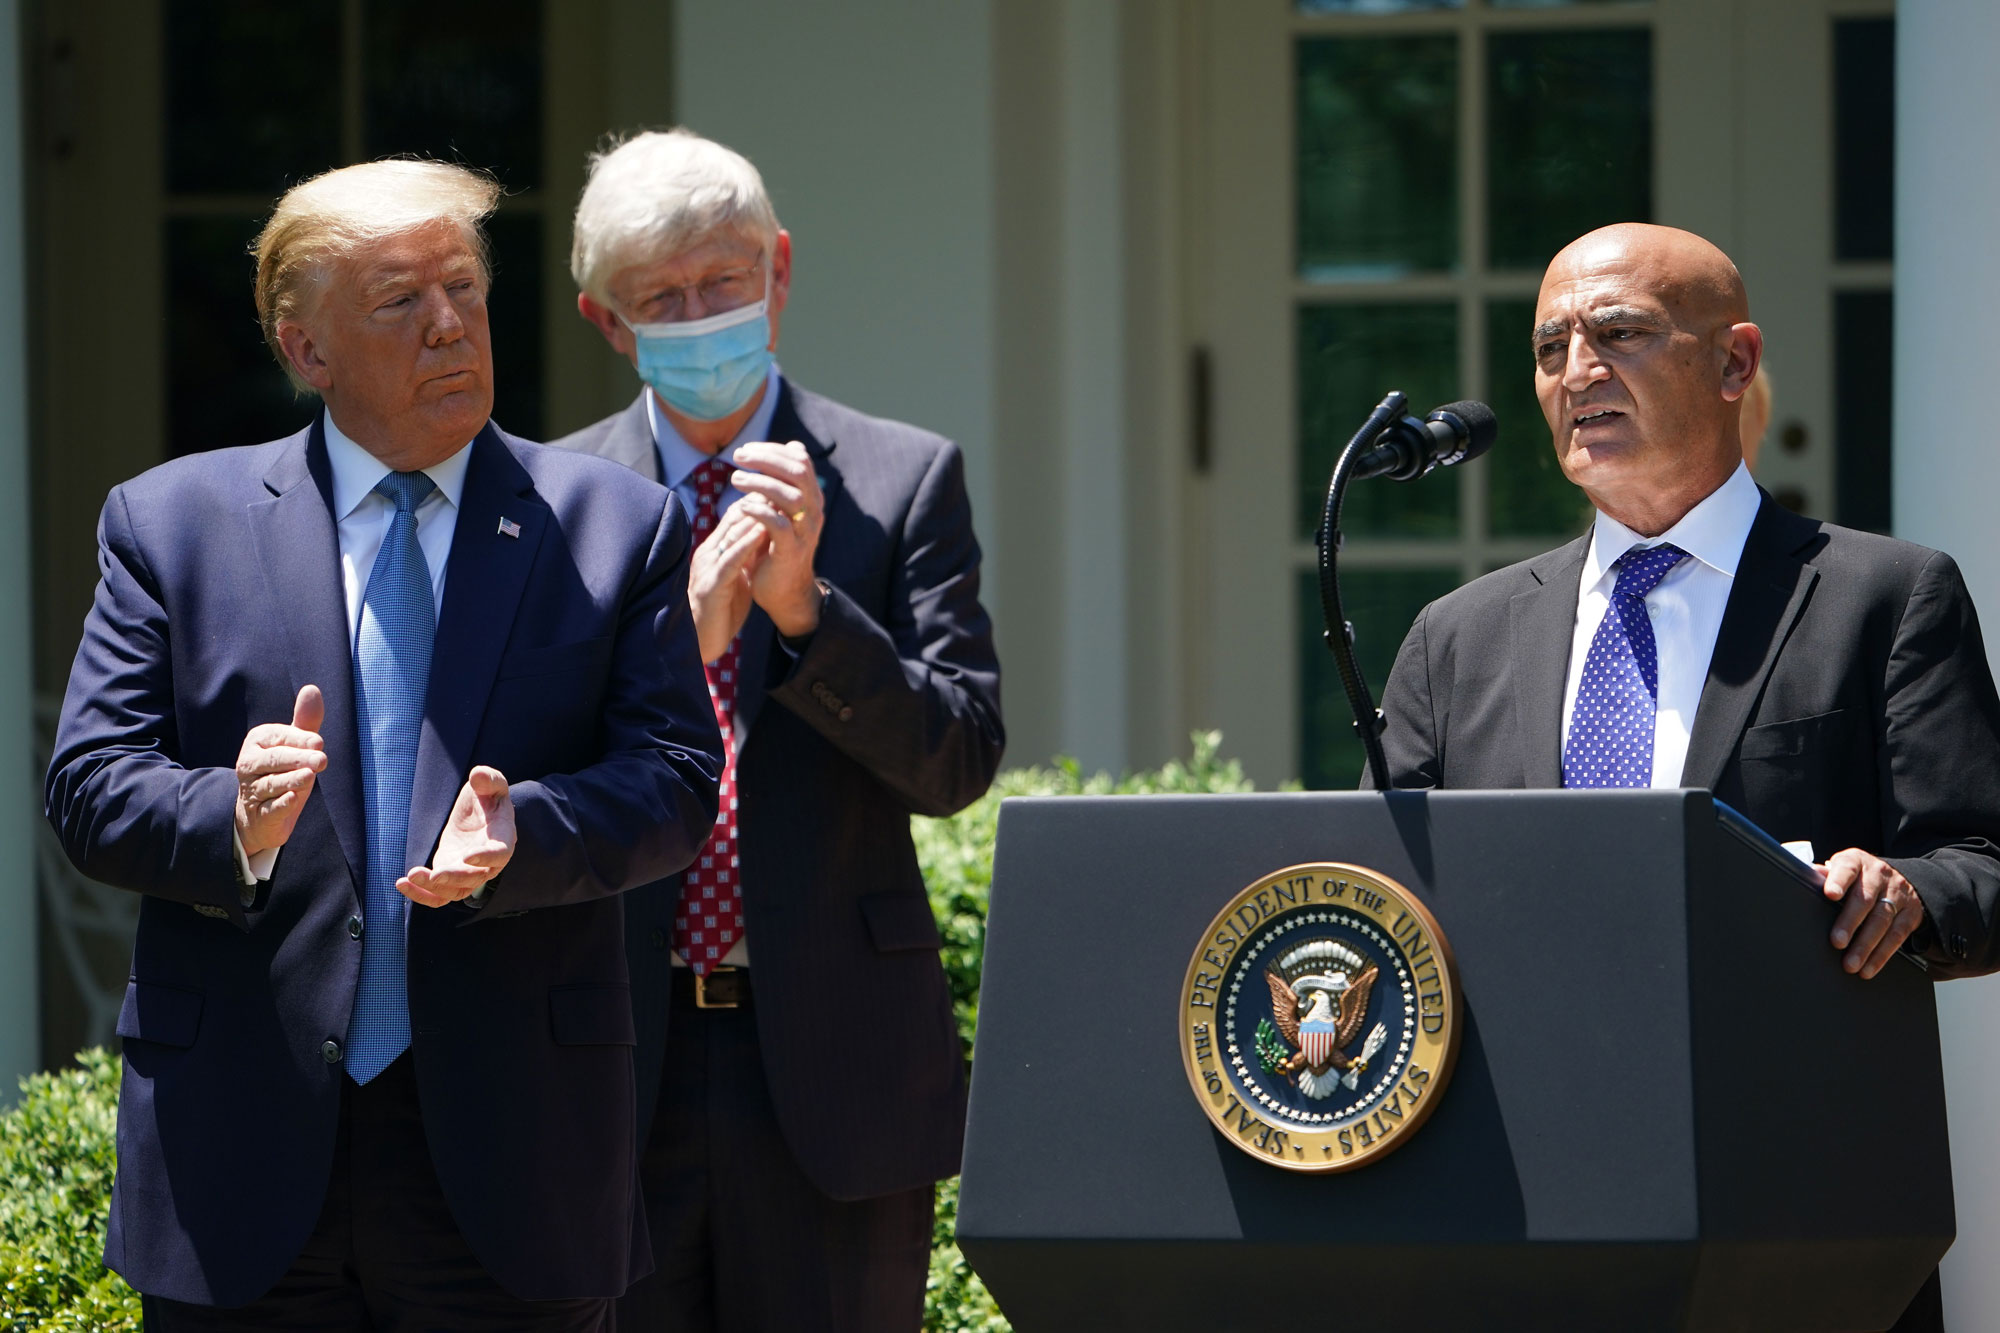 """Chief Adviser """"Warp Speed"""" vaccine effort Monecef Slaoui (R), with US President Donald Trump, speaks on vaccine development on May 15 in the Rose Garden of the White House in Washington."""